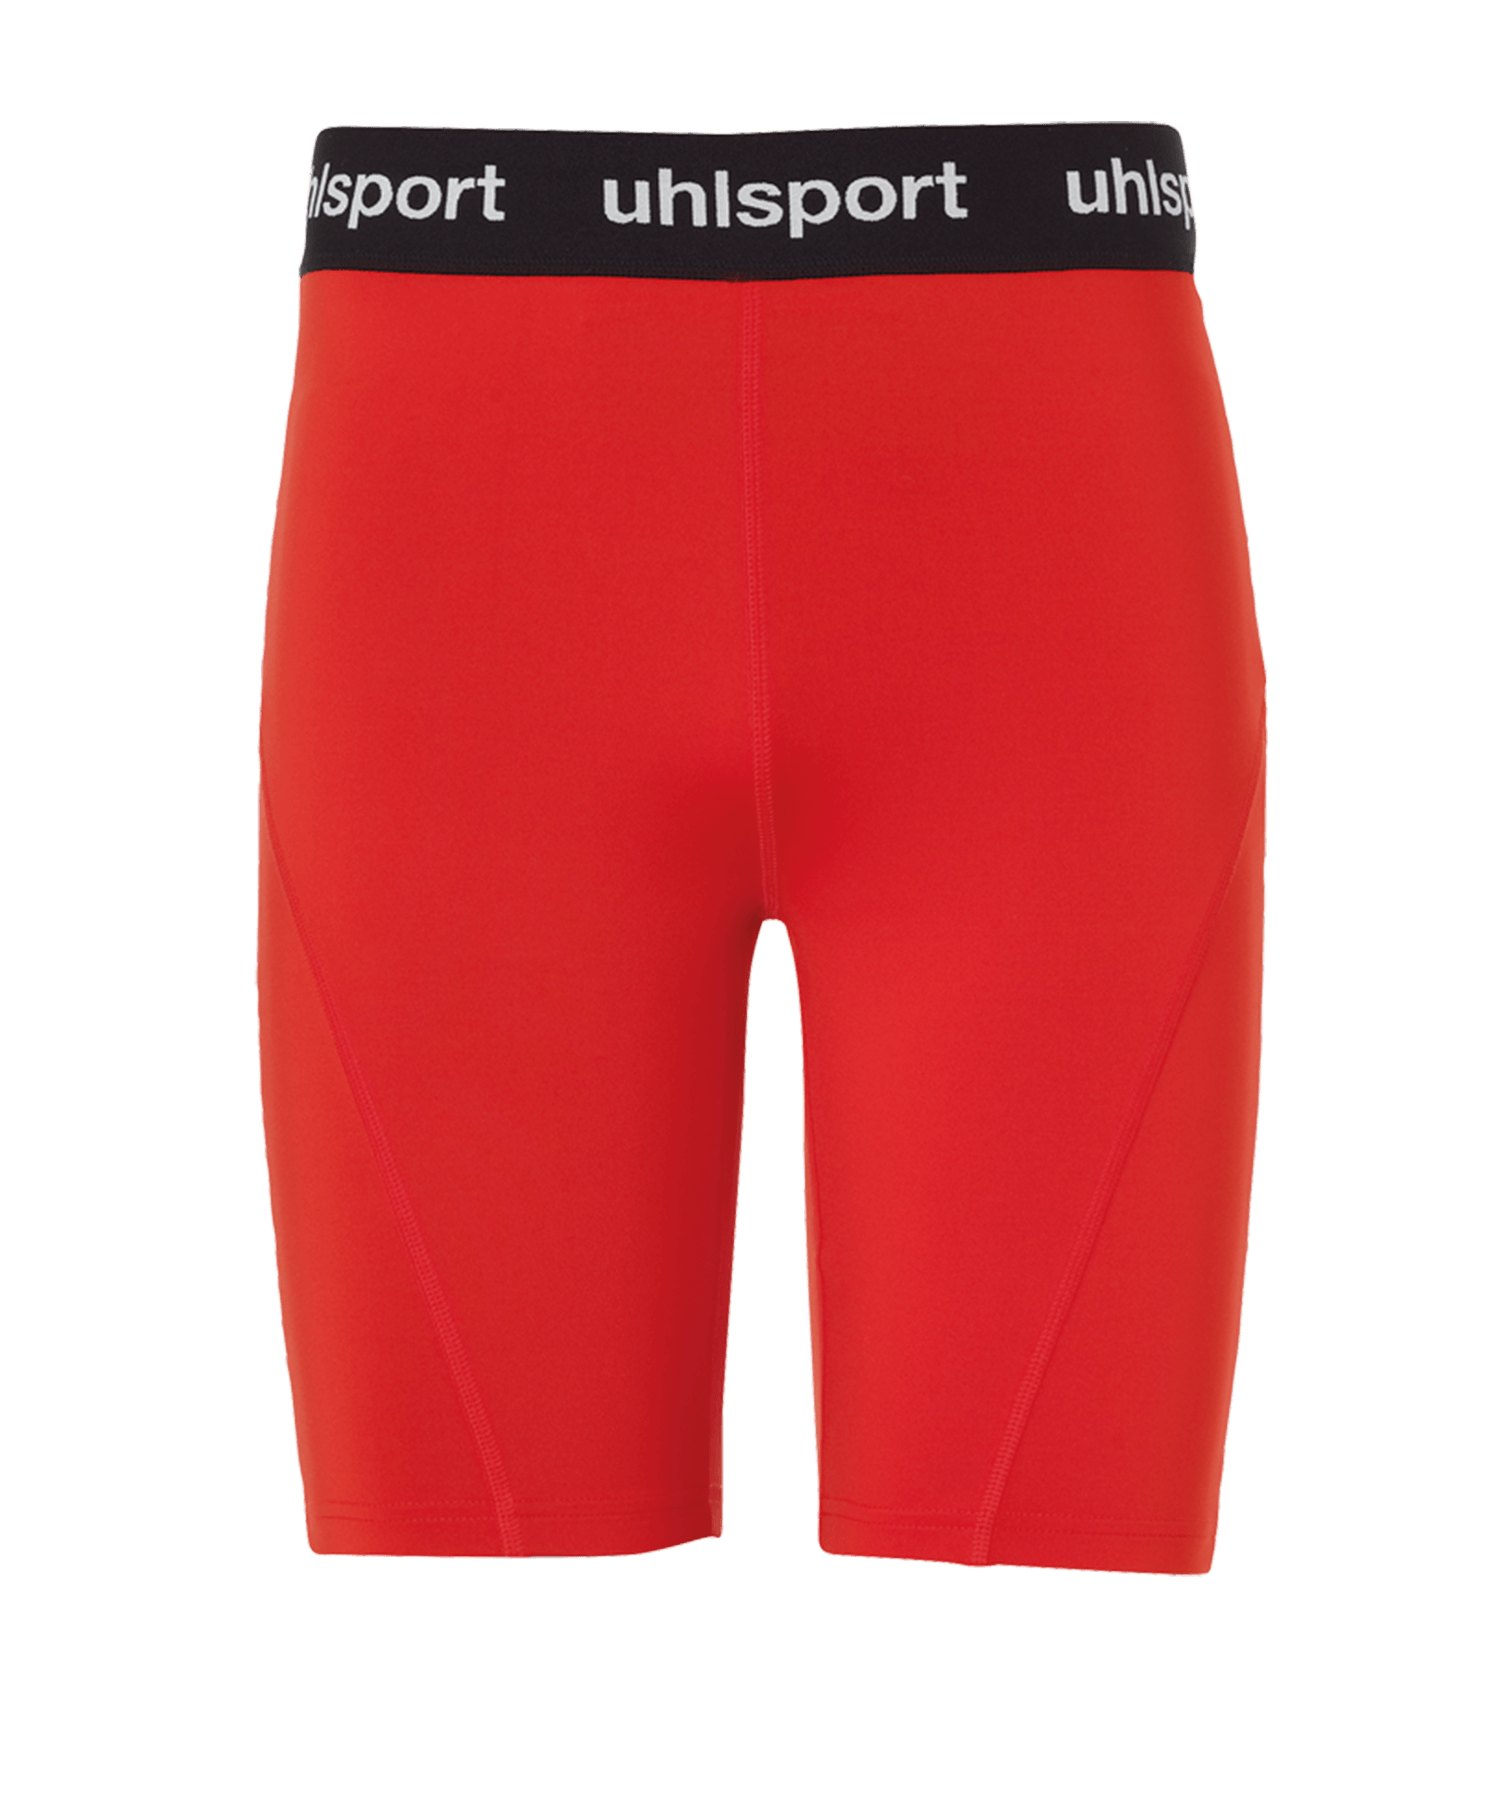 Uhlsport Tight Short Hose kurz Rot F04 - rot